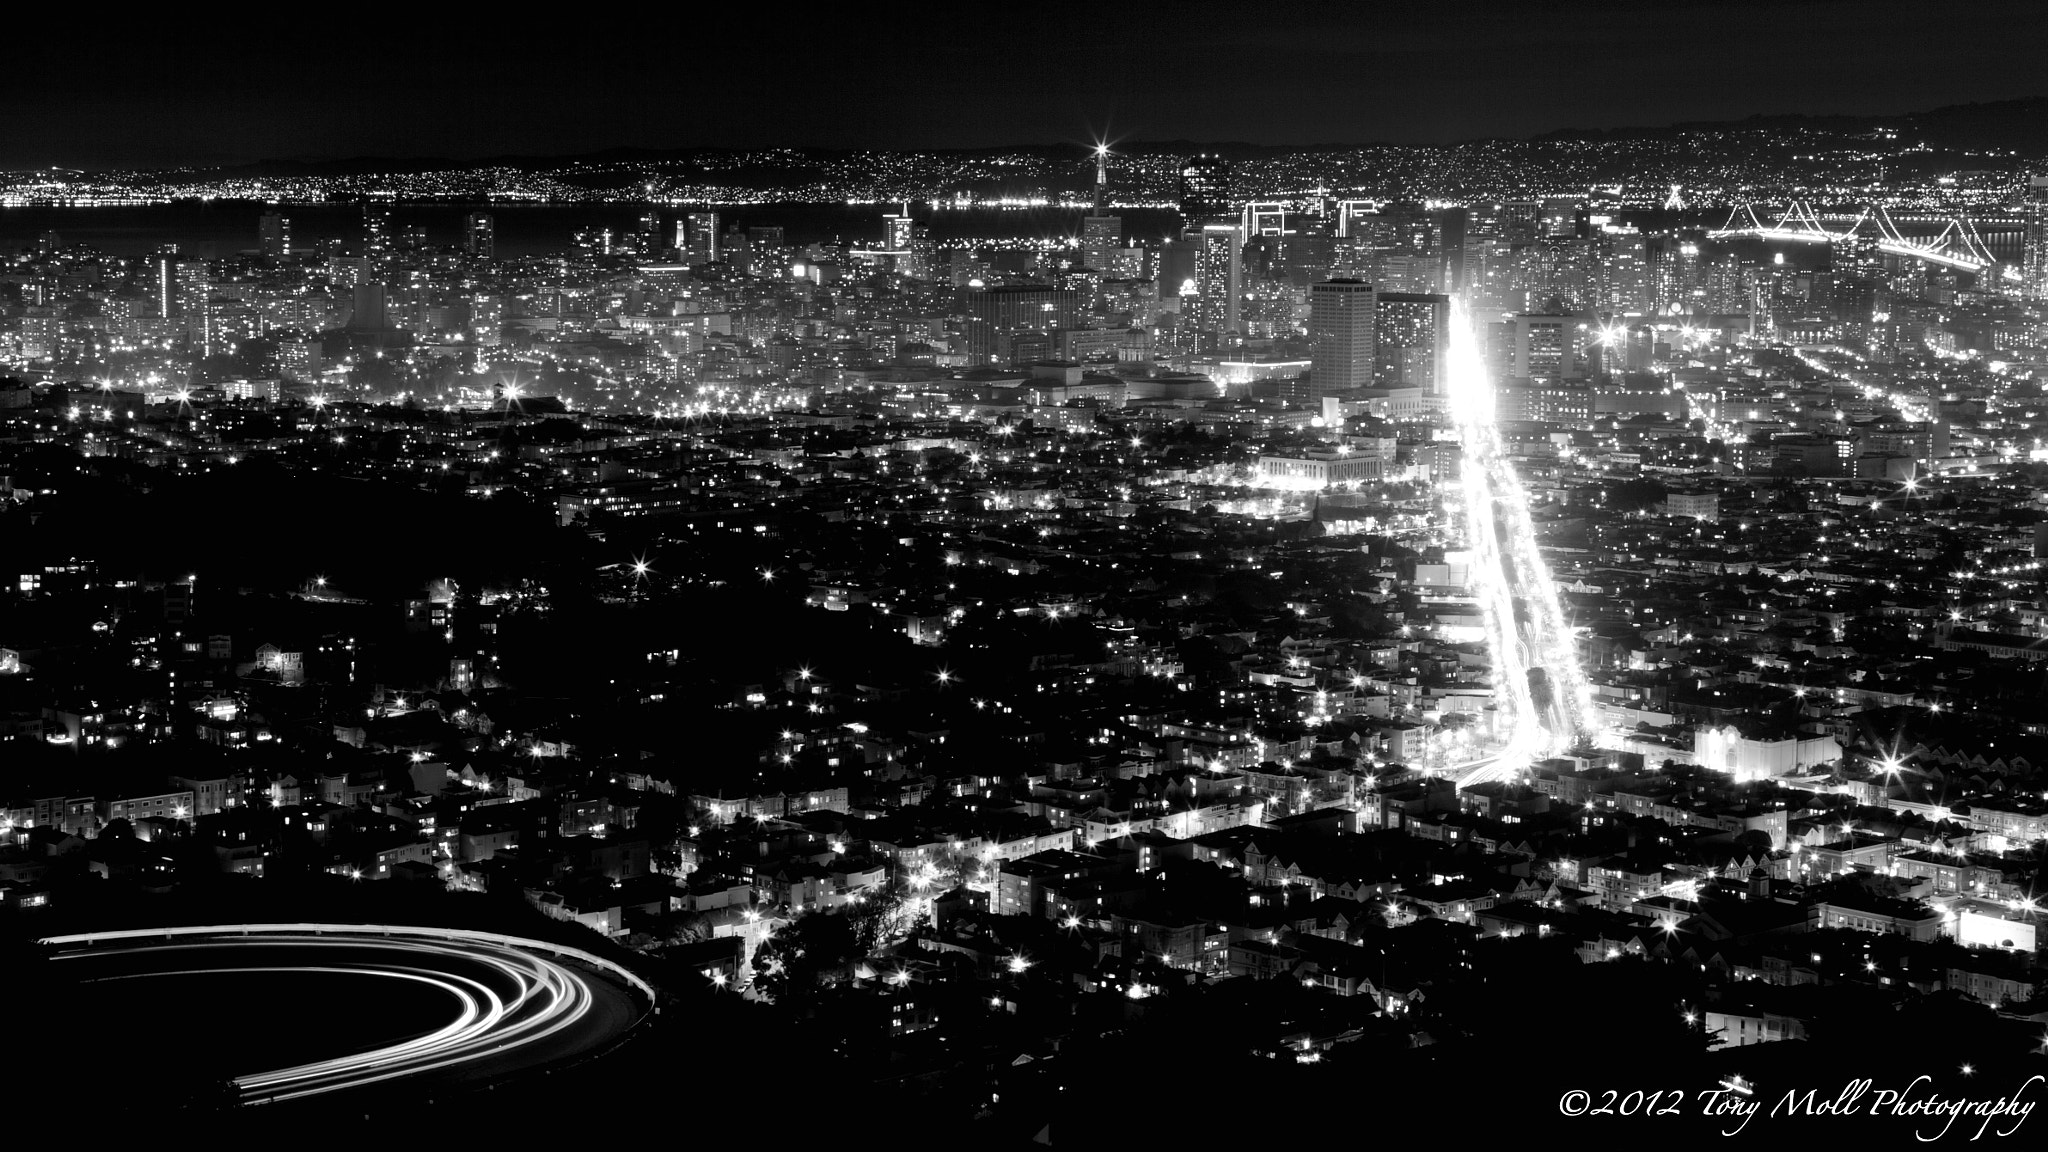 Photograph The City by Tony Moll on 500px